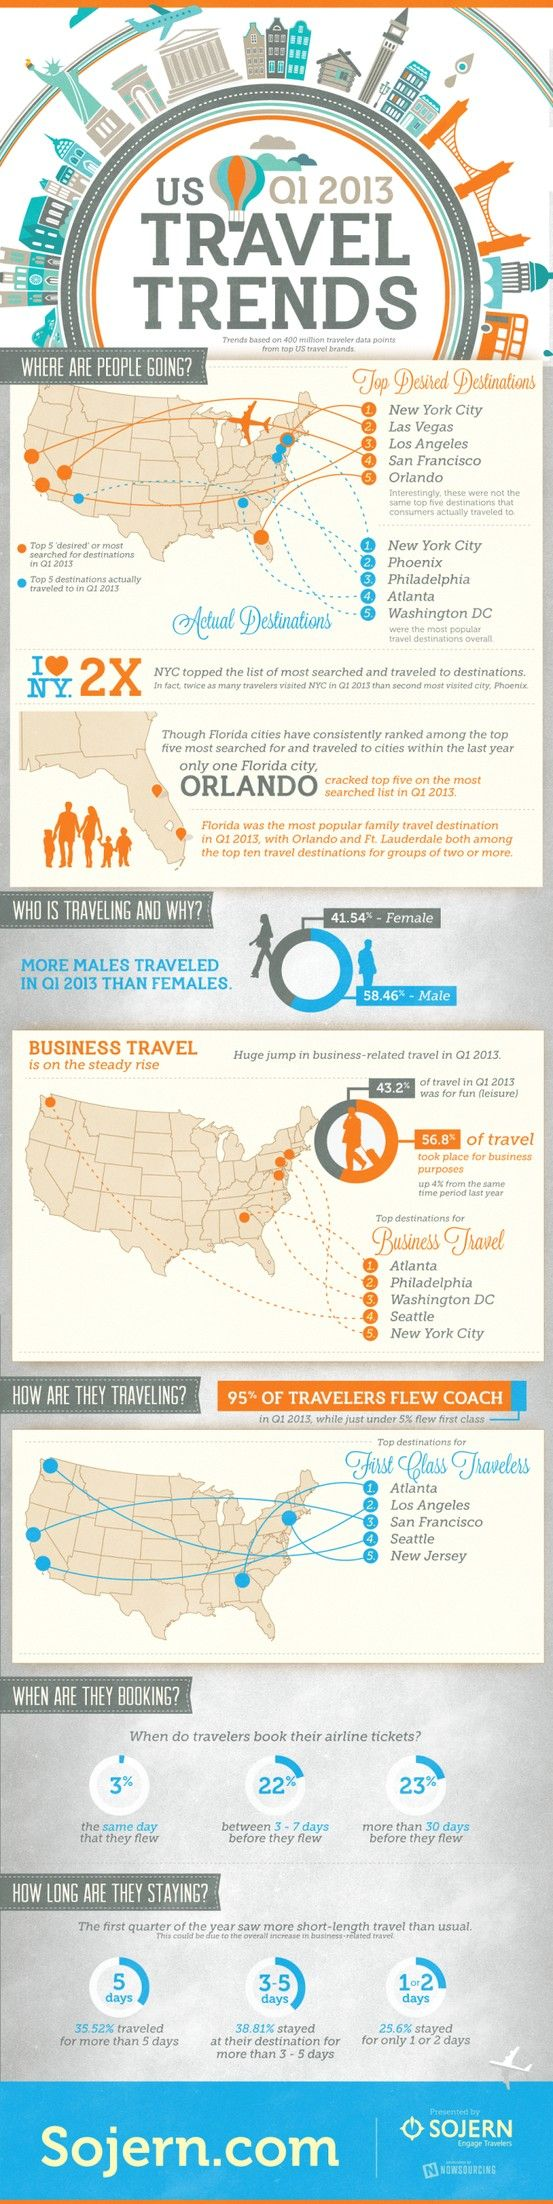 US Travel trends #infografia #infographic #tourism